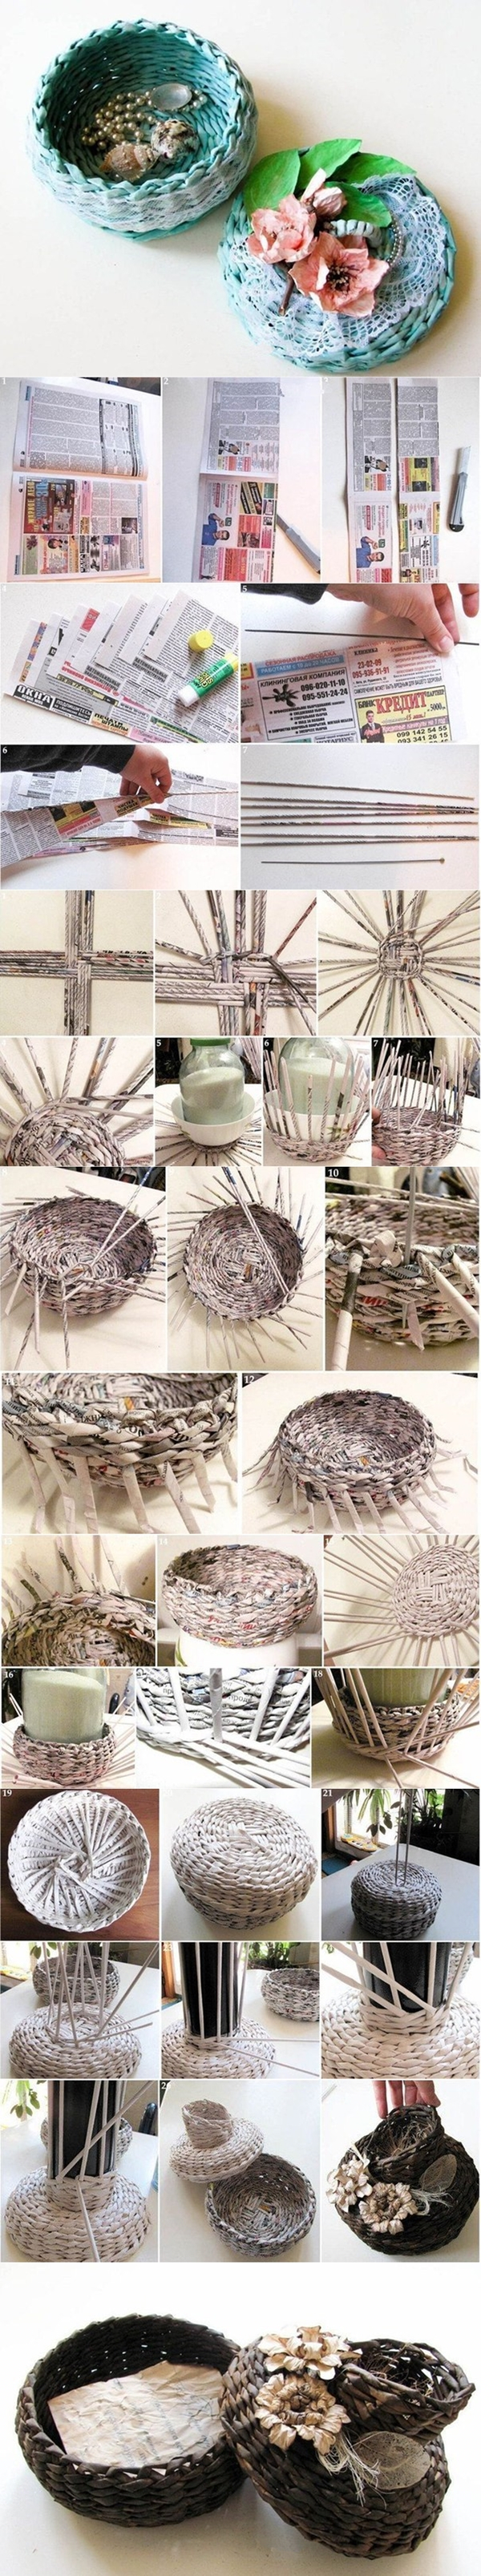 Weaved Basket Tutorial Woven Paper Craft